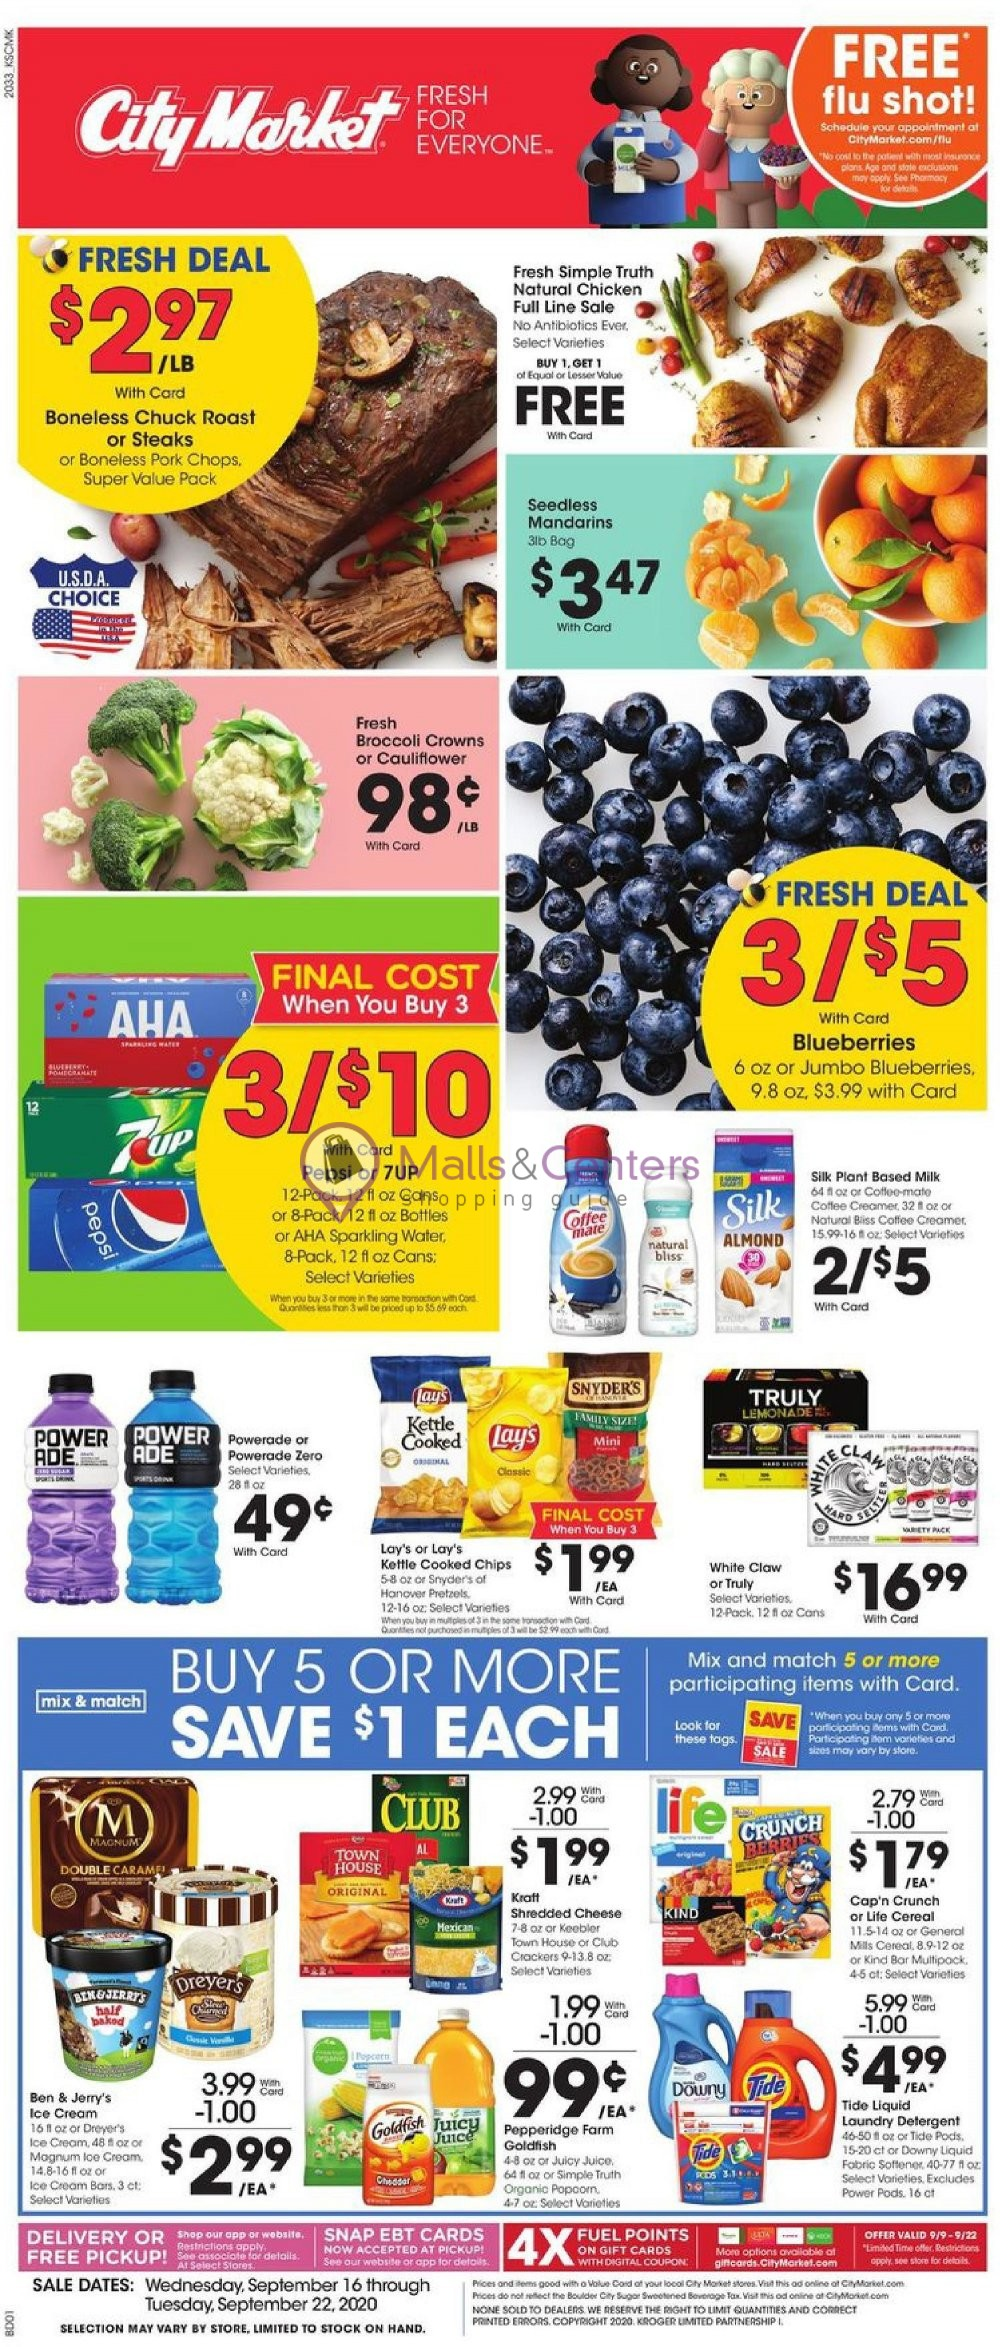 weekly ads City Market - page 1 - mallscenters.com